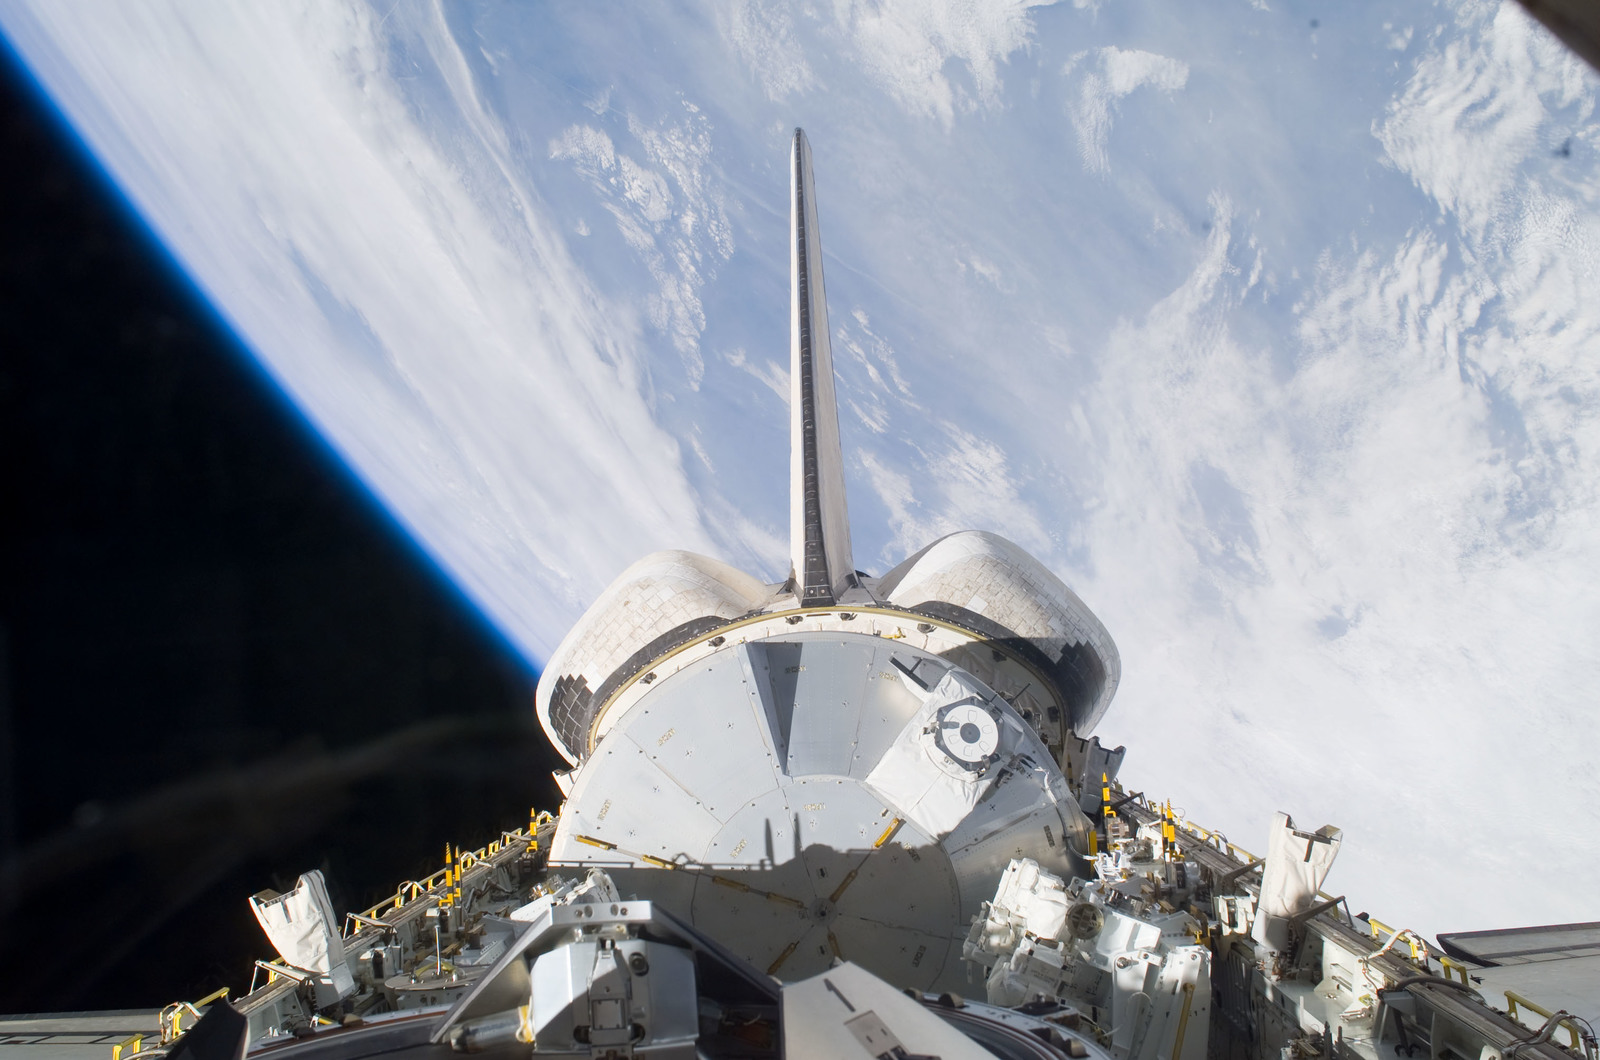 S123E005640 - STS-123 - Space Shuttle Endeavour,OV 105,Payload Bay during STS-123